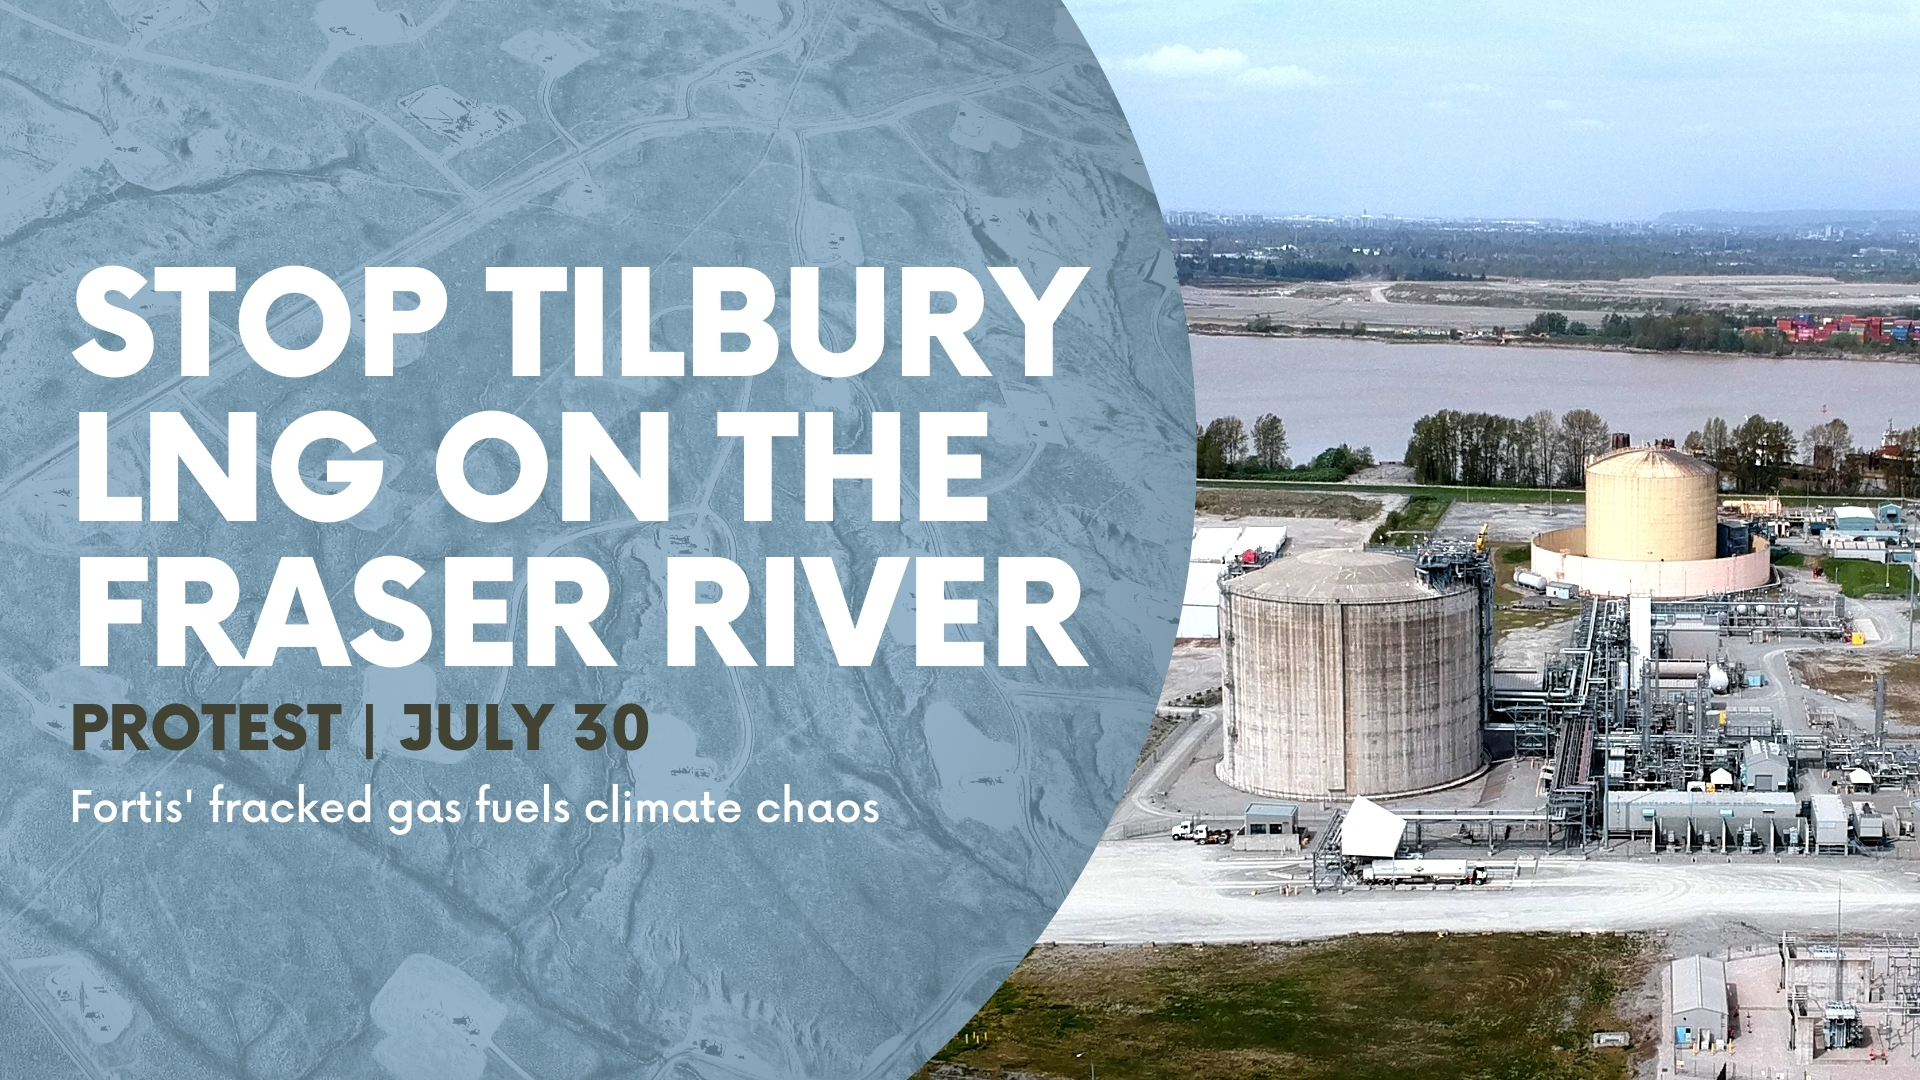 The event title appears on a background bird's eye view of fracking pads on a landscape. To the right, a drone shot of two large gas tanks on the Fraser at Tilbury LNG